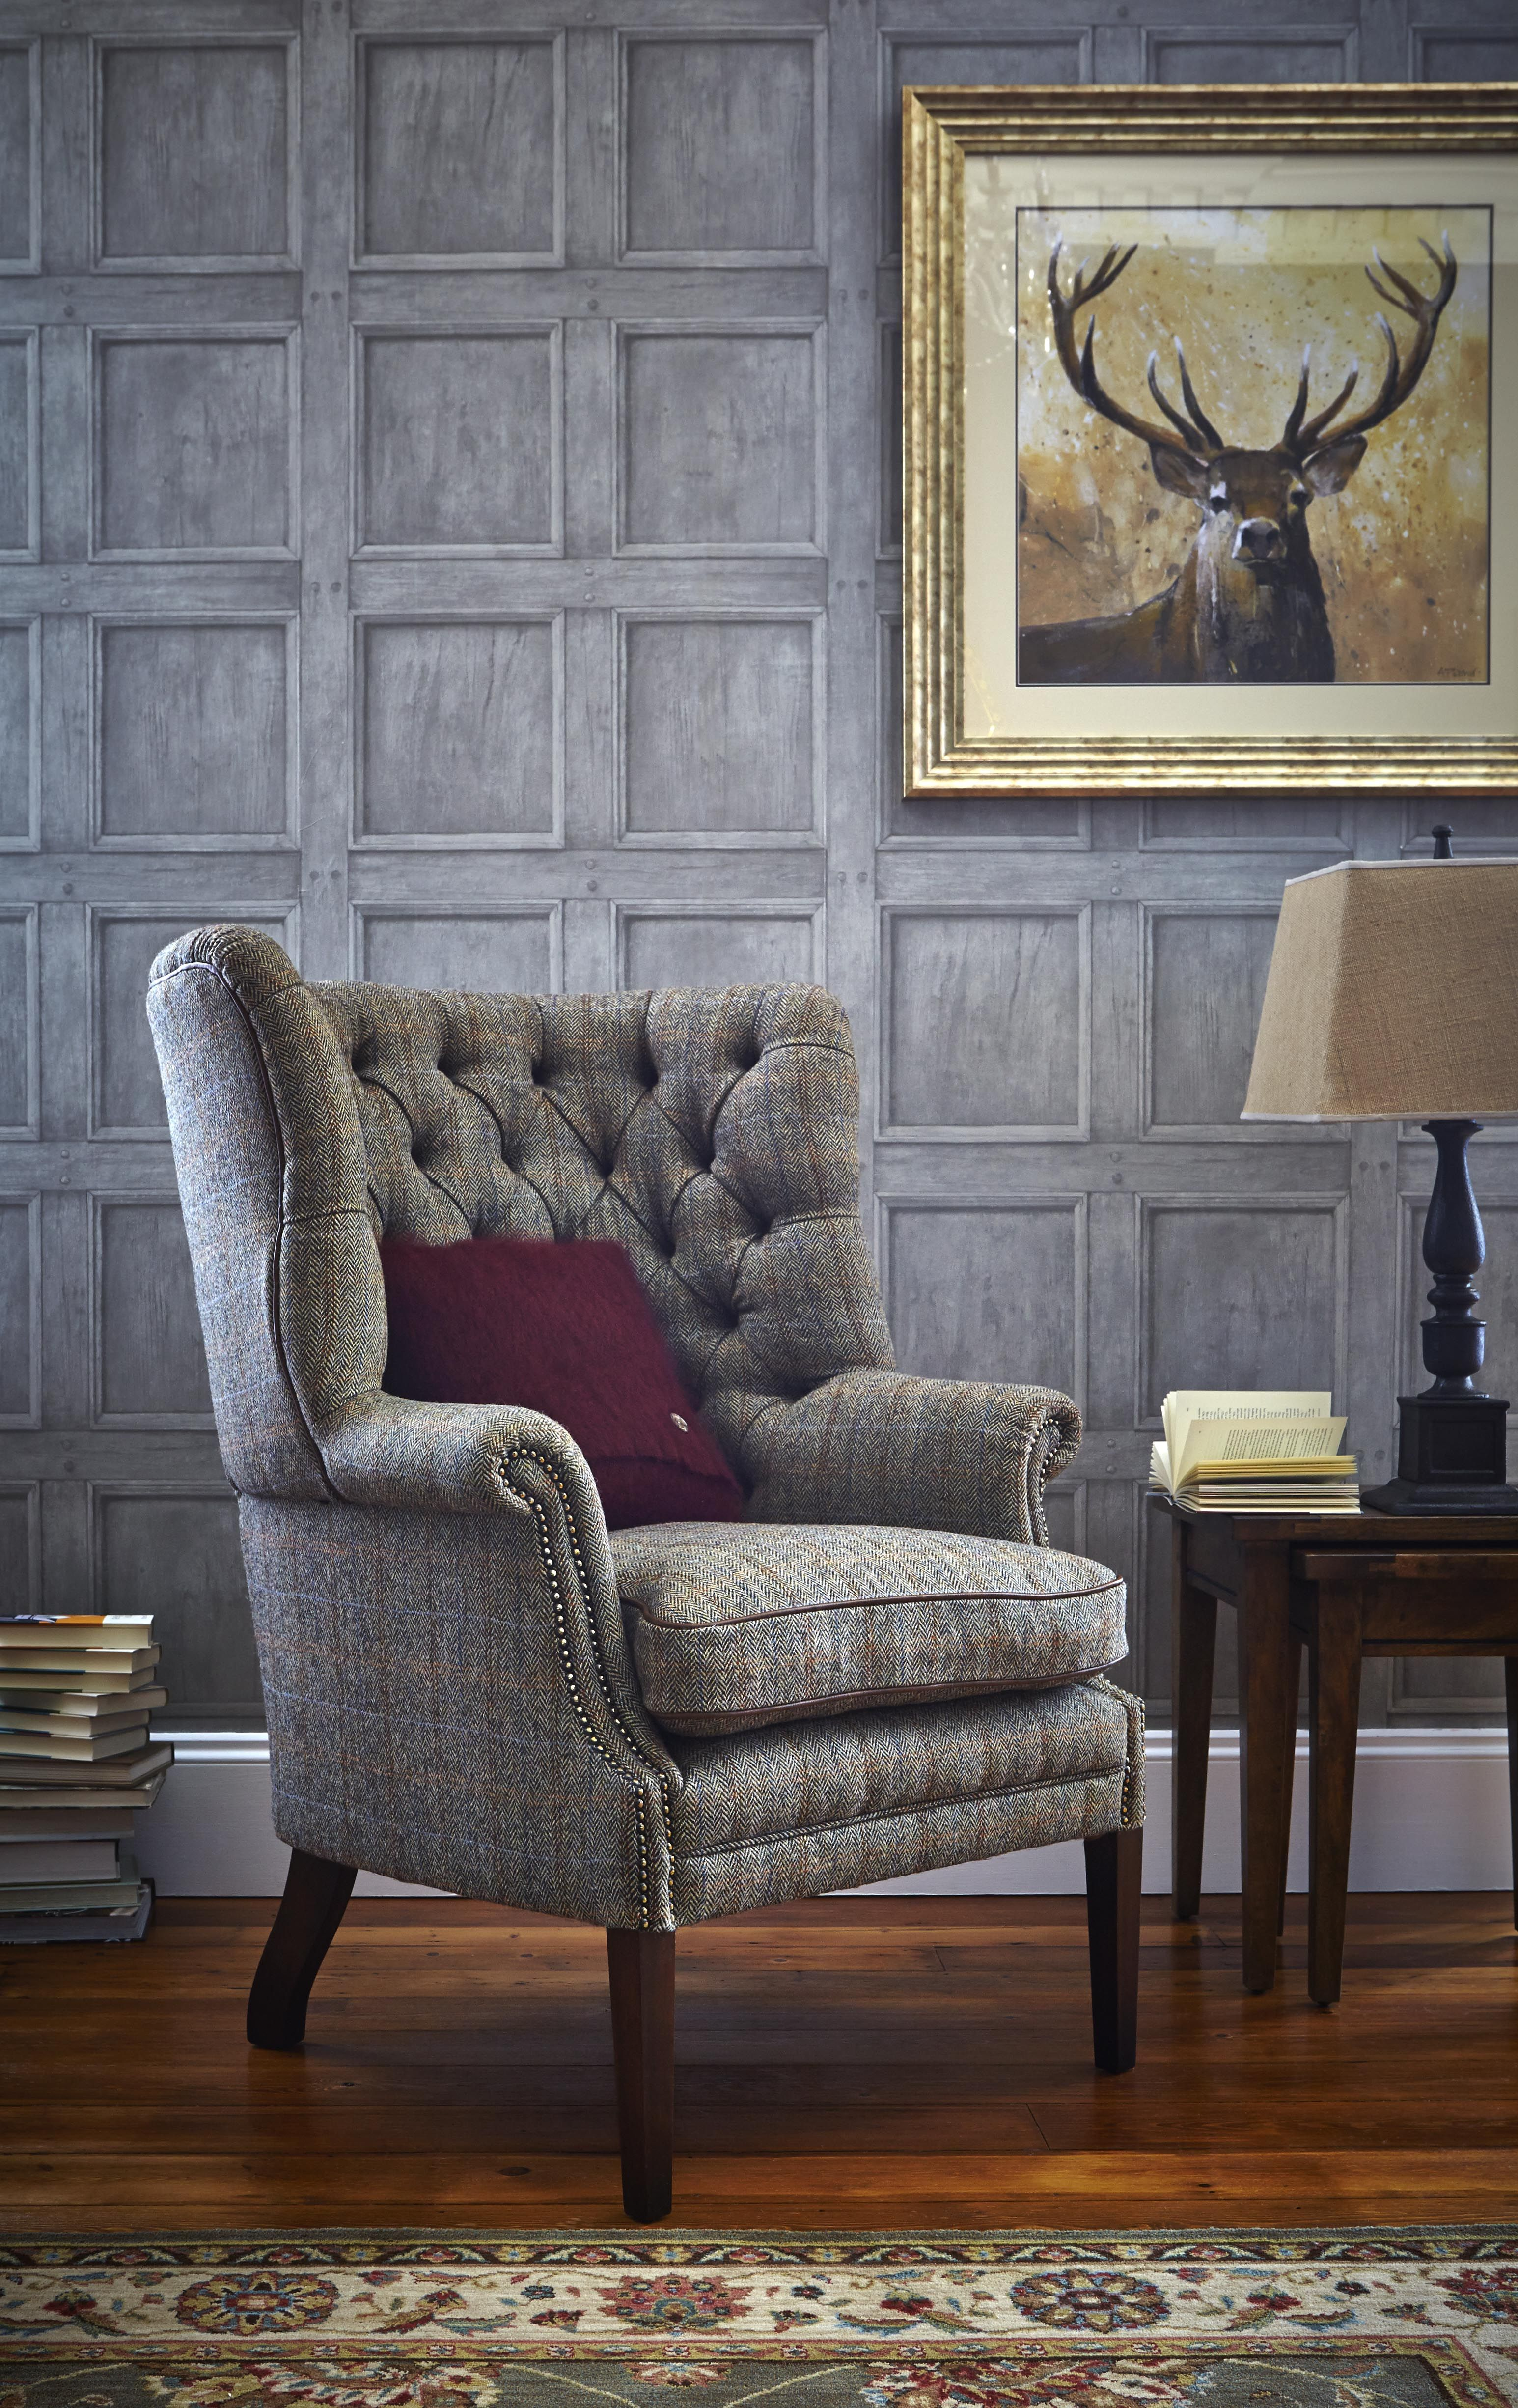 Living Room Chairs For Bad Backs The Best Tufted Neutral Chairs Entry Ways Furniture And Style